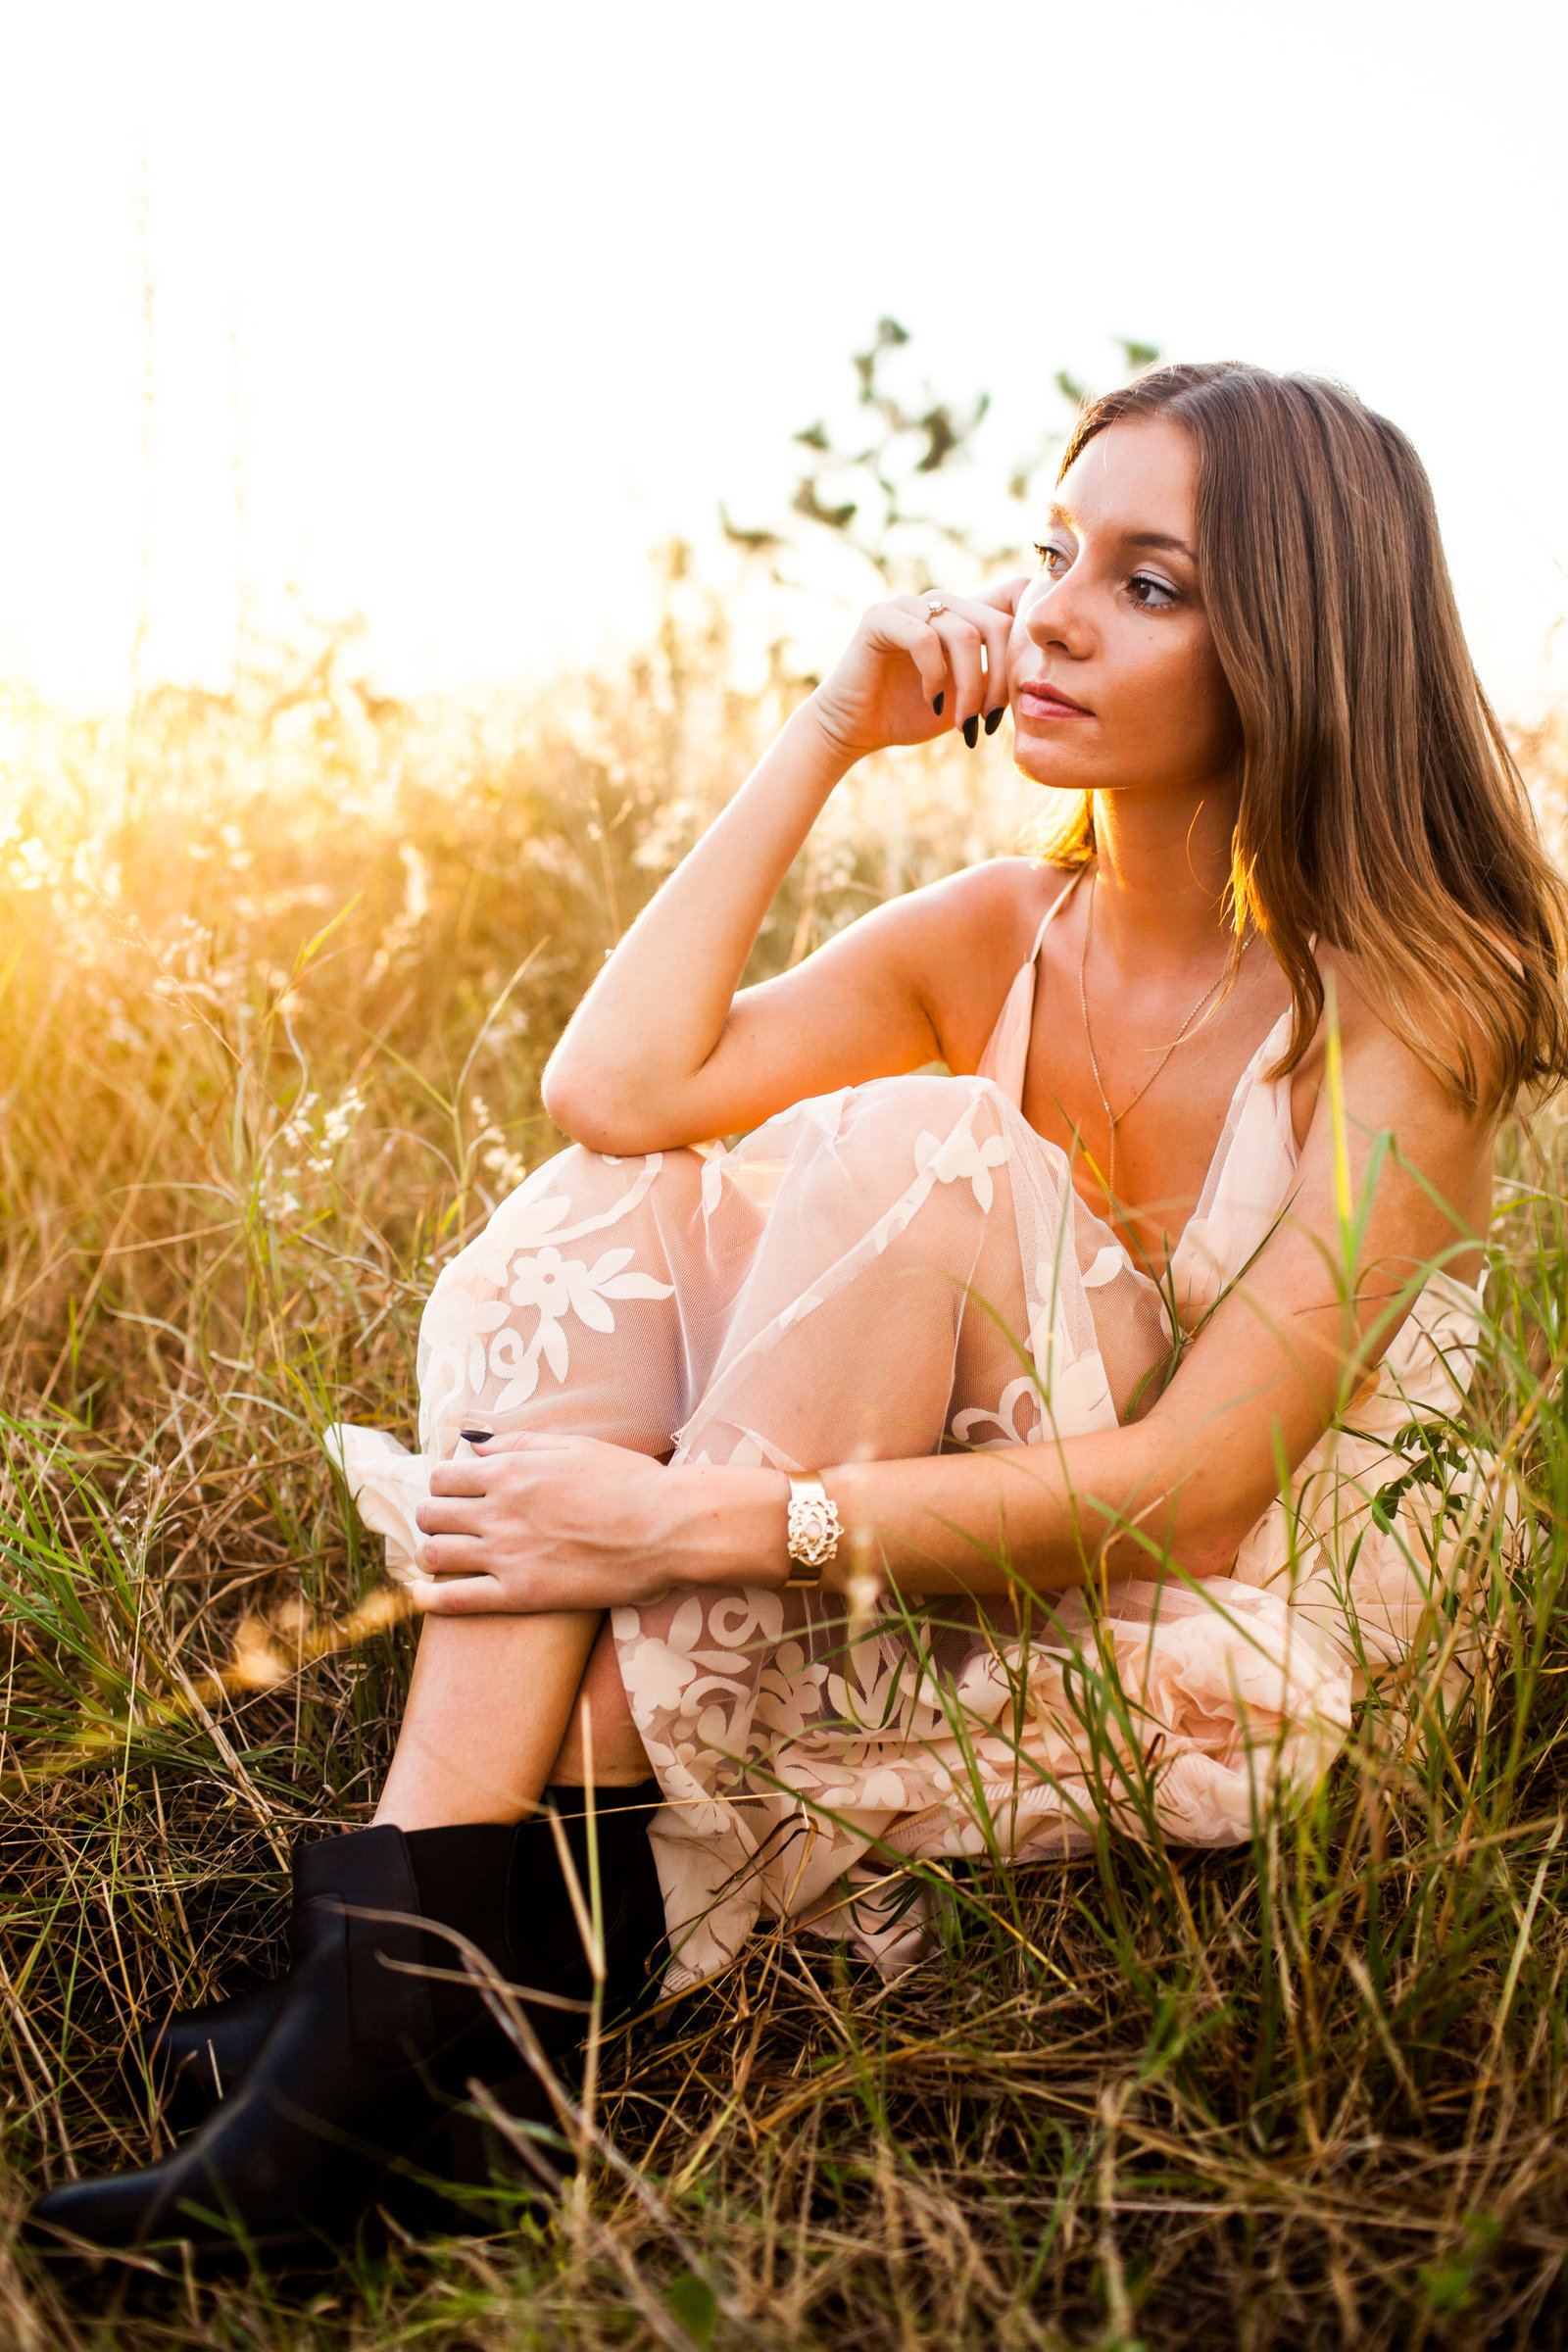 Senior pictures at sunset in field with boho dress and edgy shoes